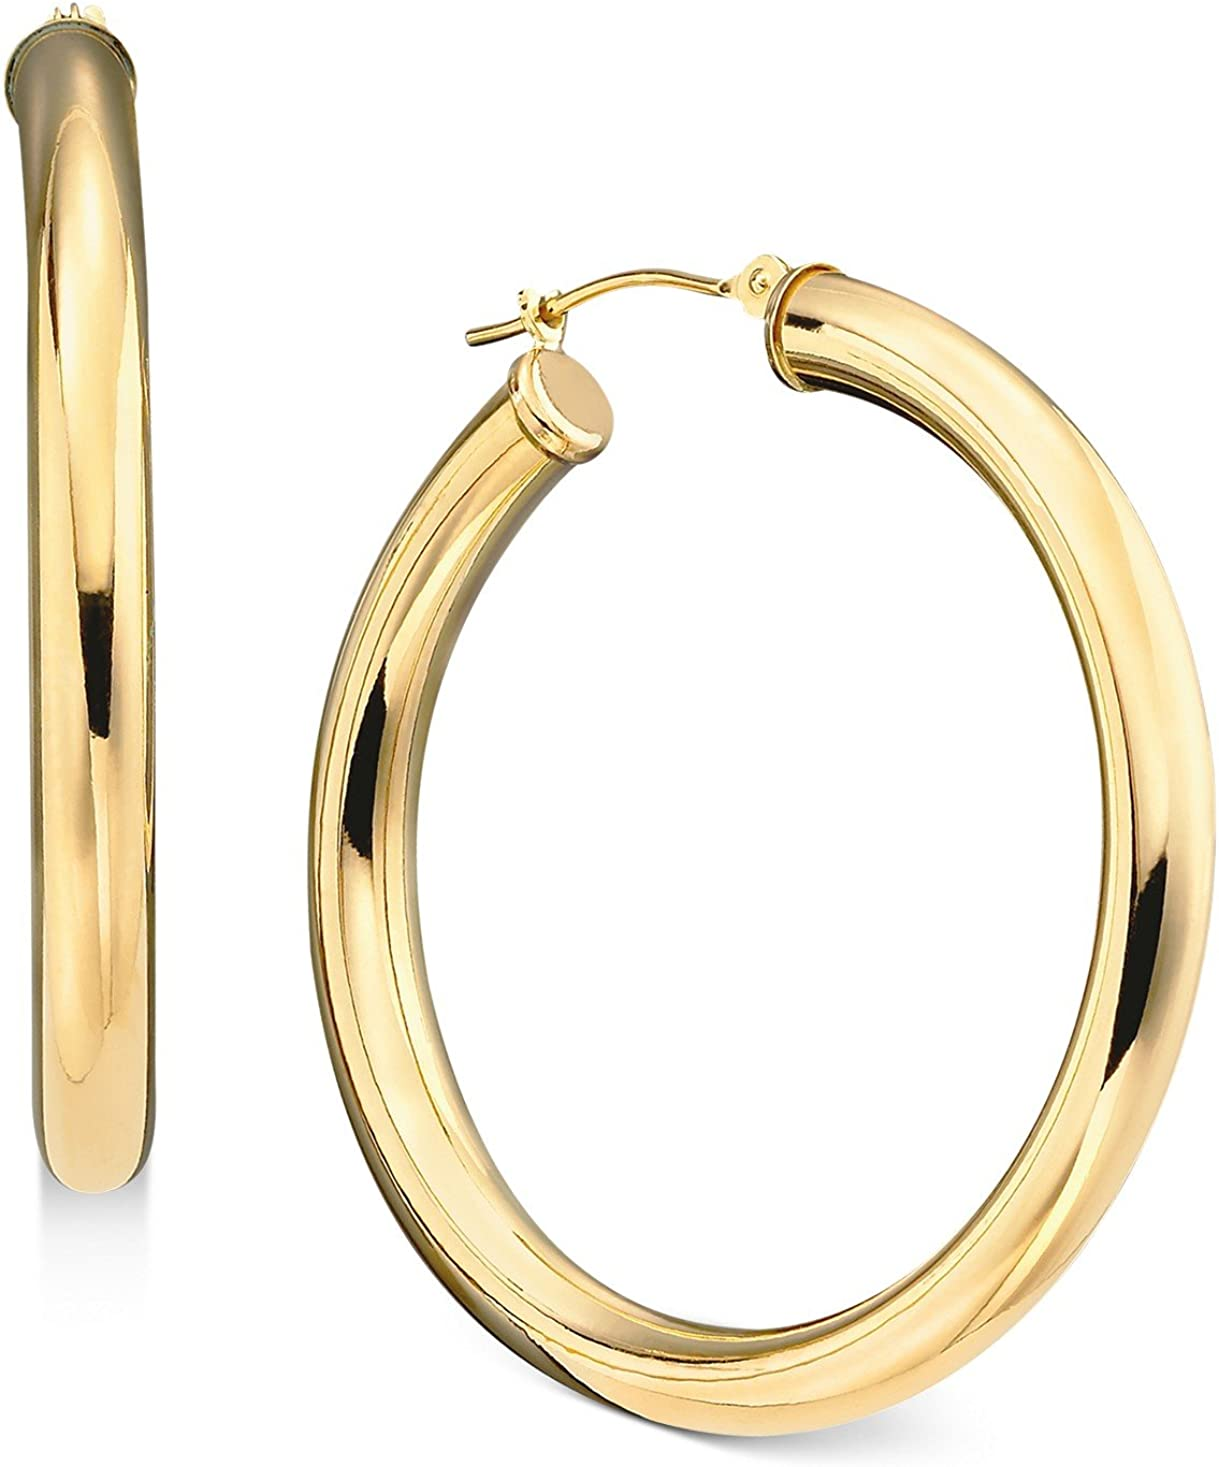 14k Yellow Sales of SALE items from Complete Free Shipping new works Gold Classic Shiny Polished Round Earrings Hoop 2mm